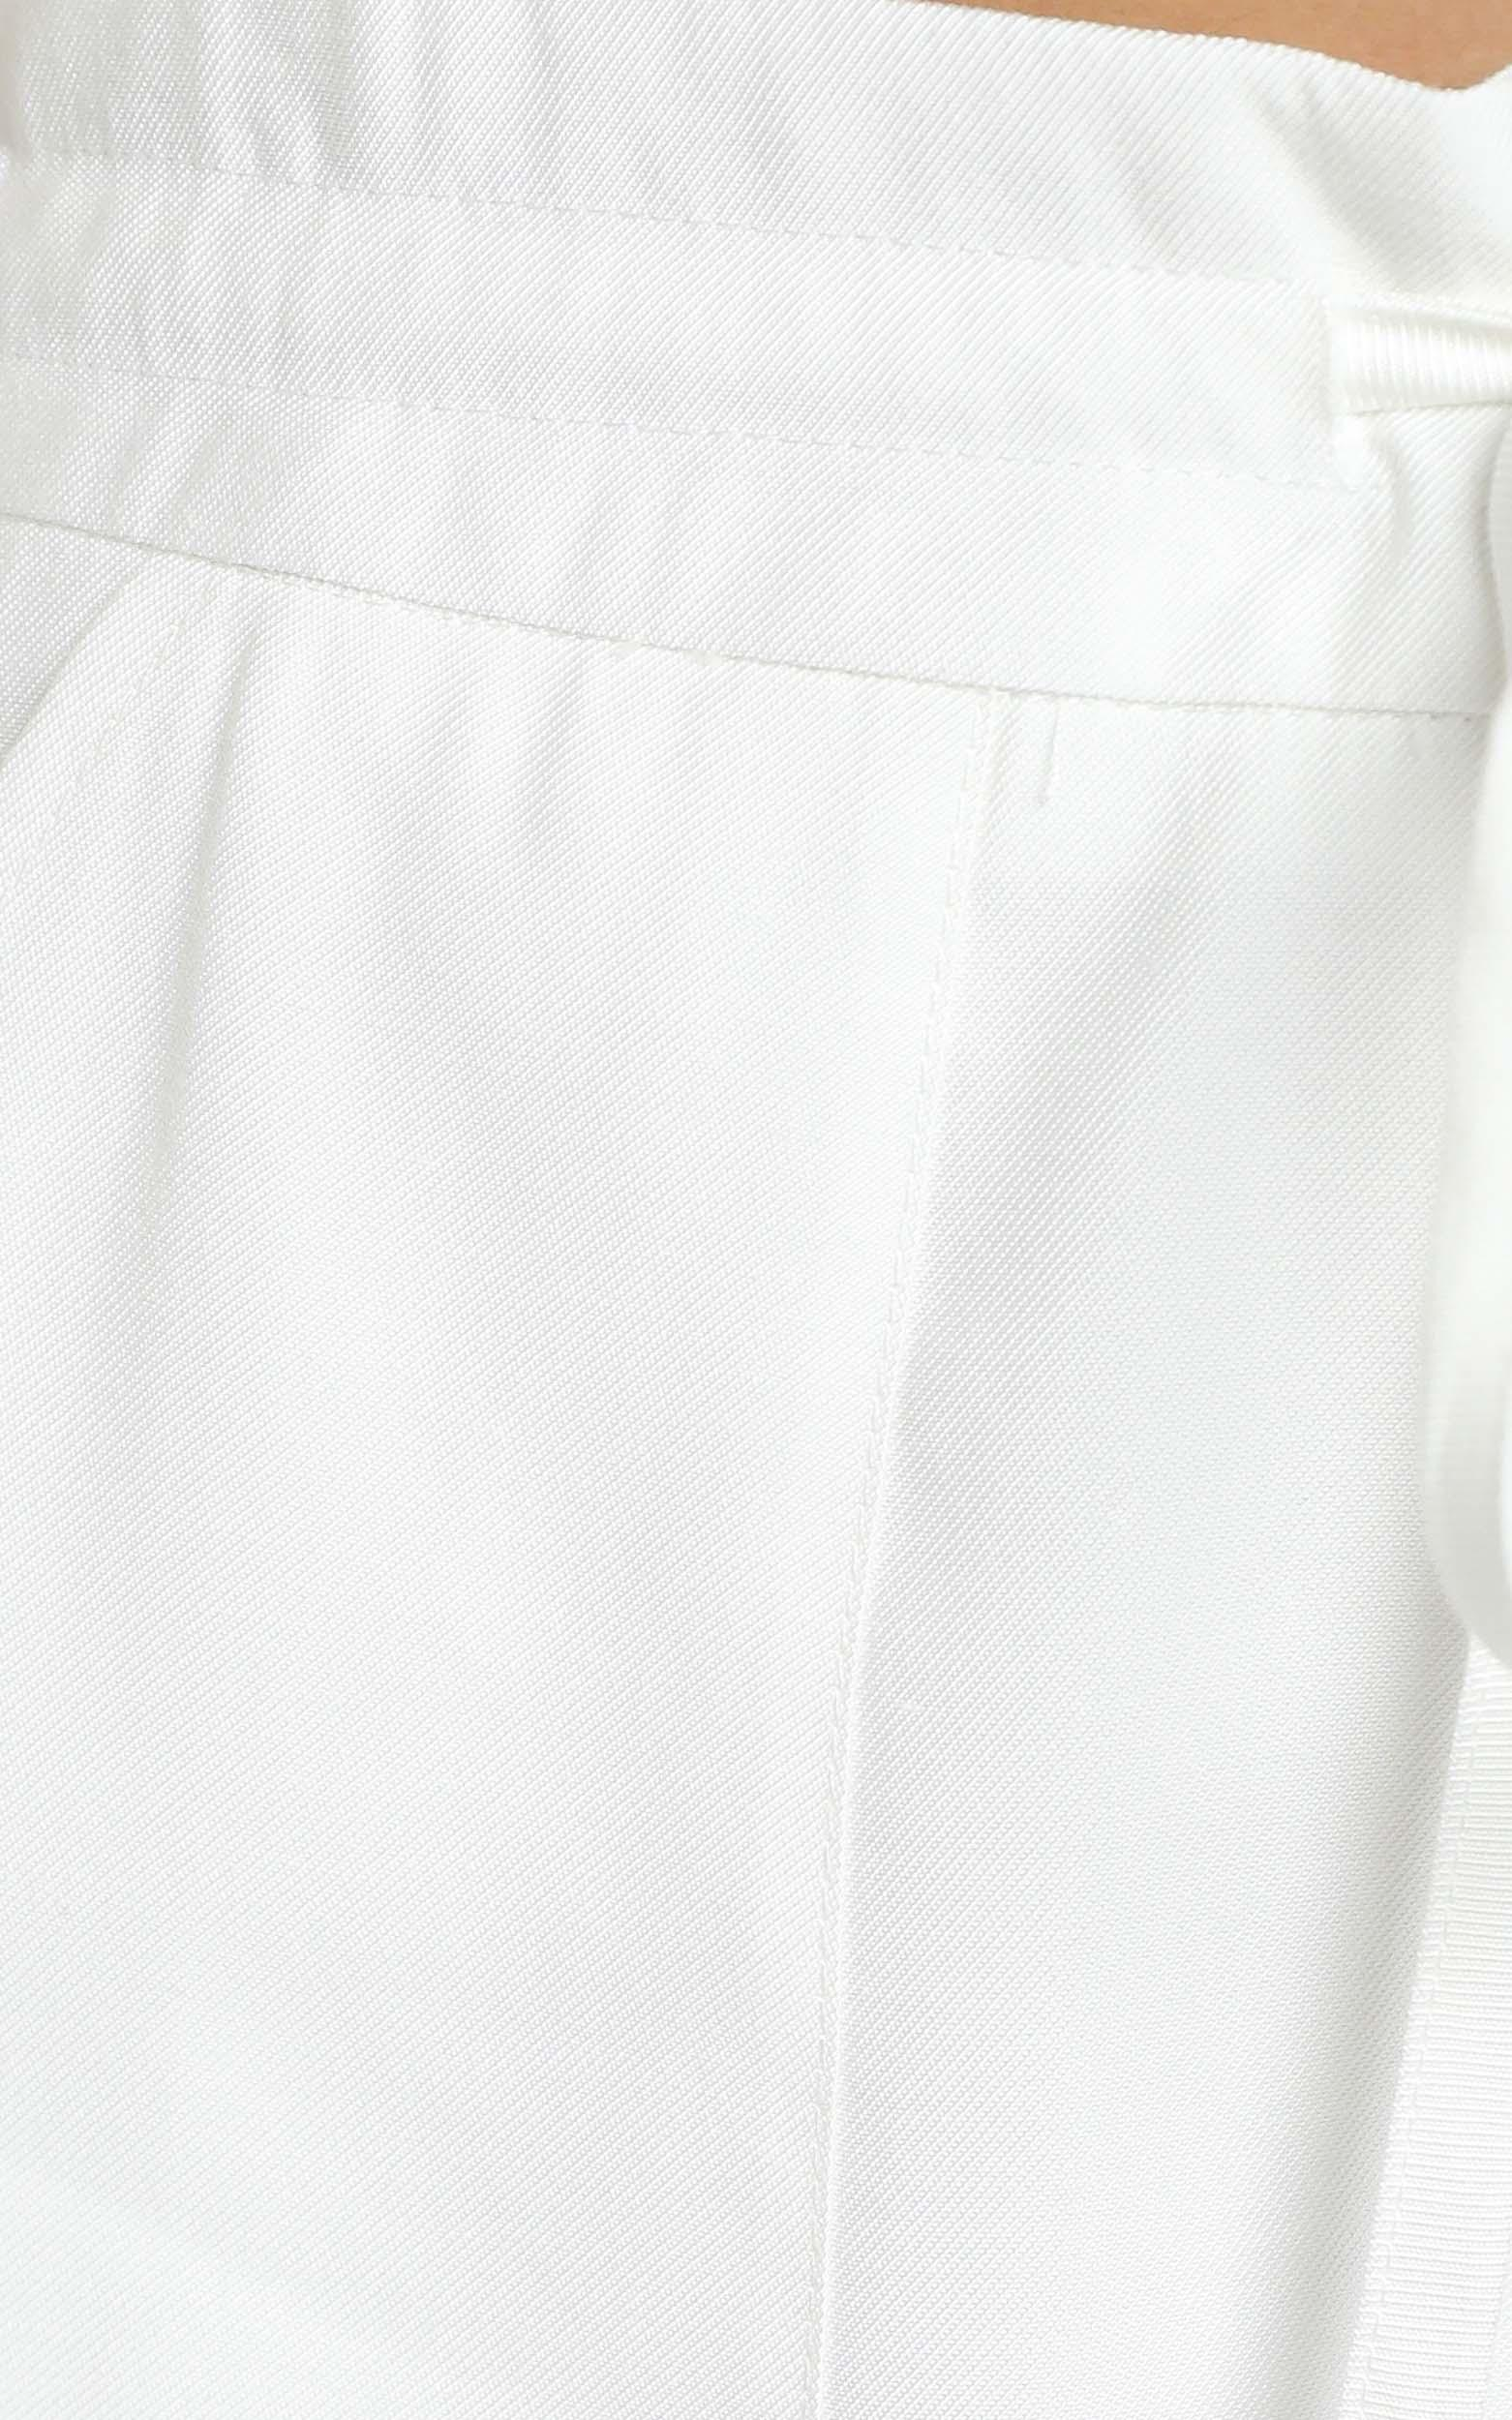 Simmons Shorts in White - 12 (L), White, hi-res image number null